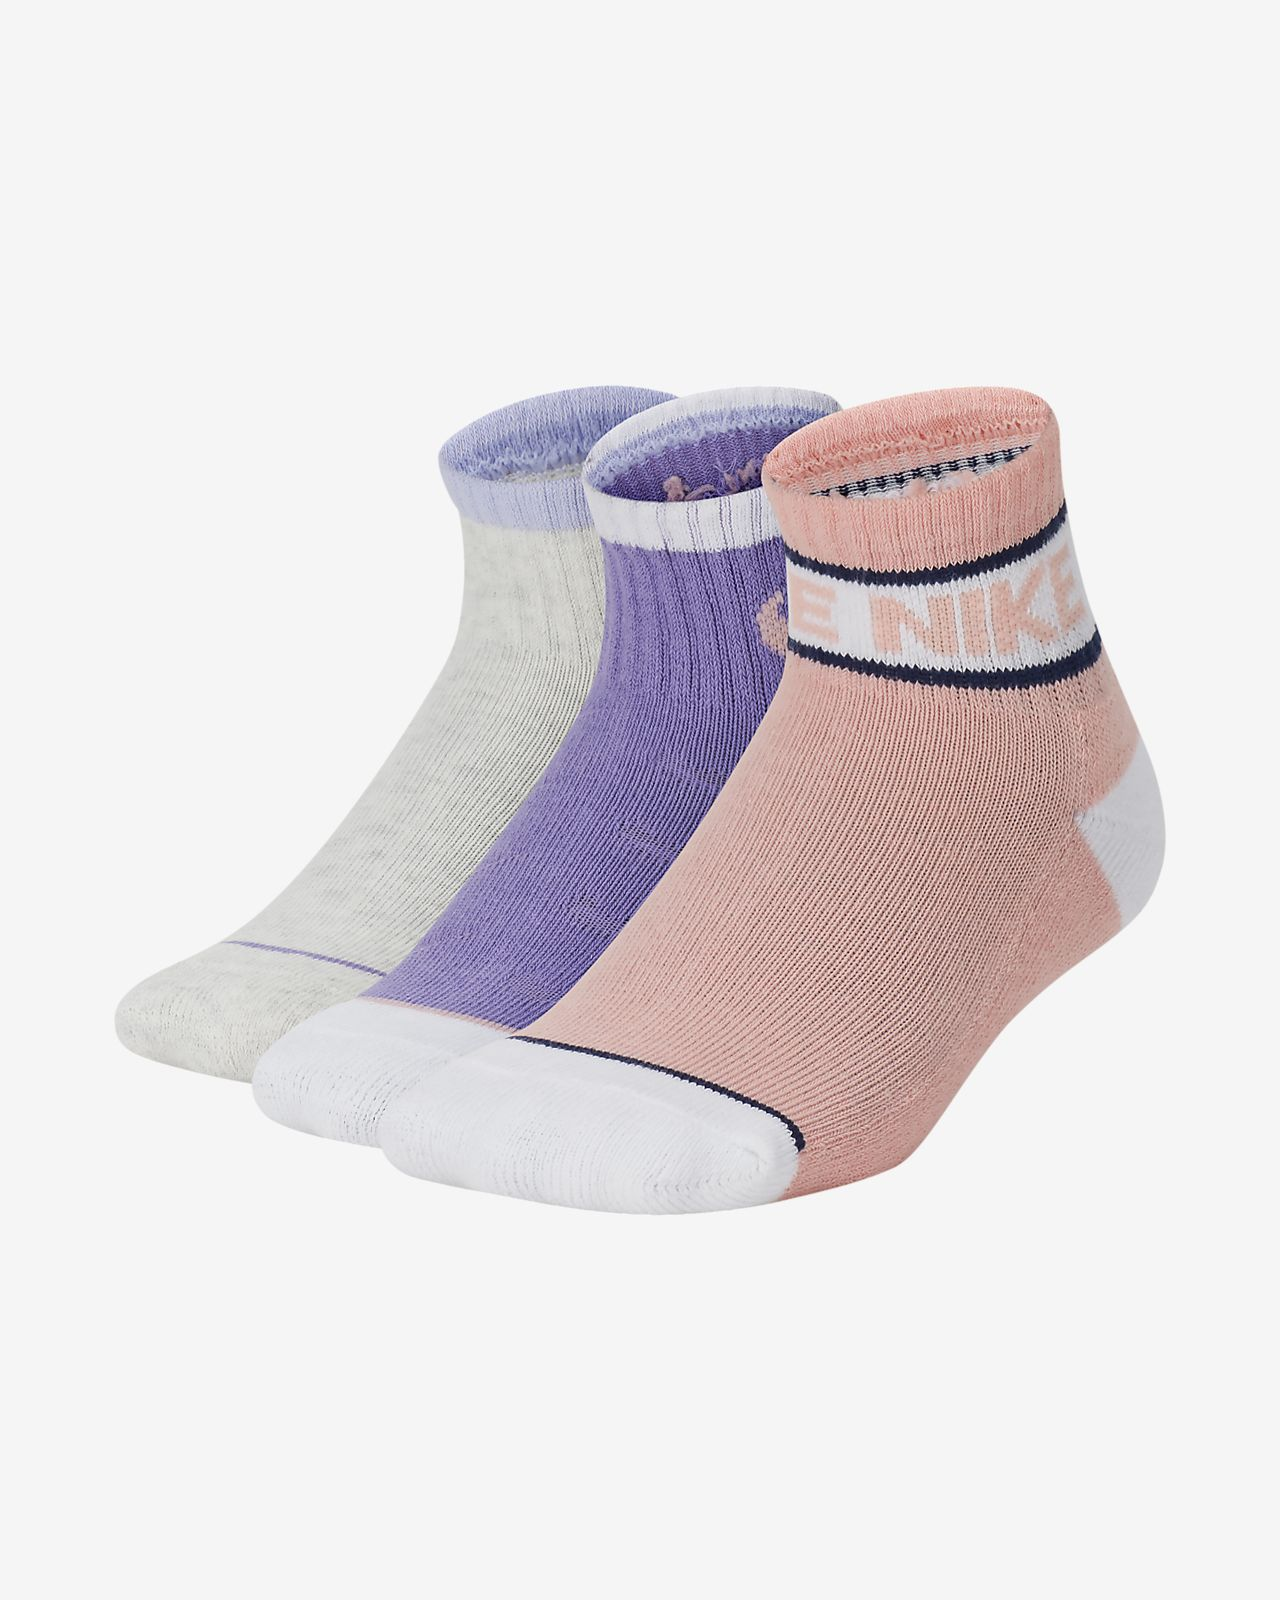 Nike Little Kids' Cushioned Ankle Socks (3 Pairs)